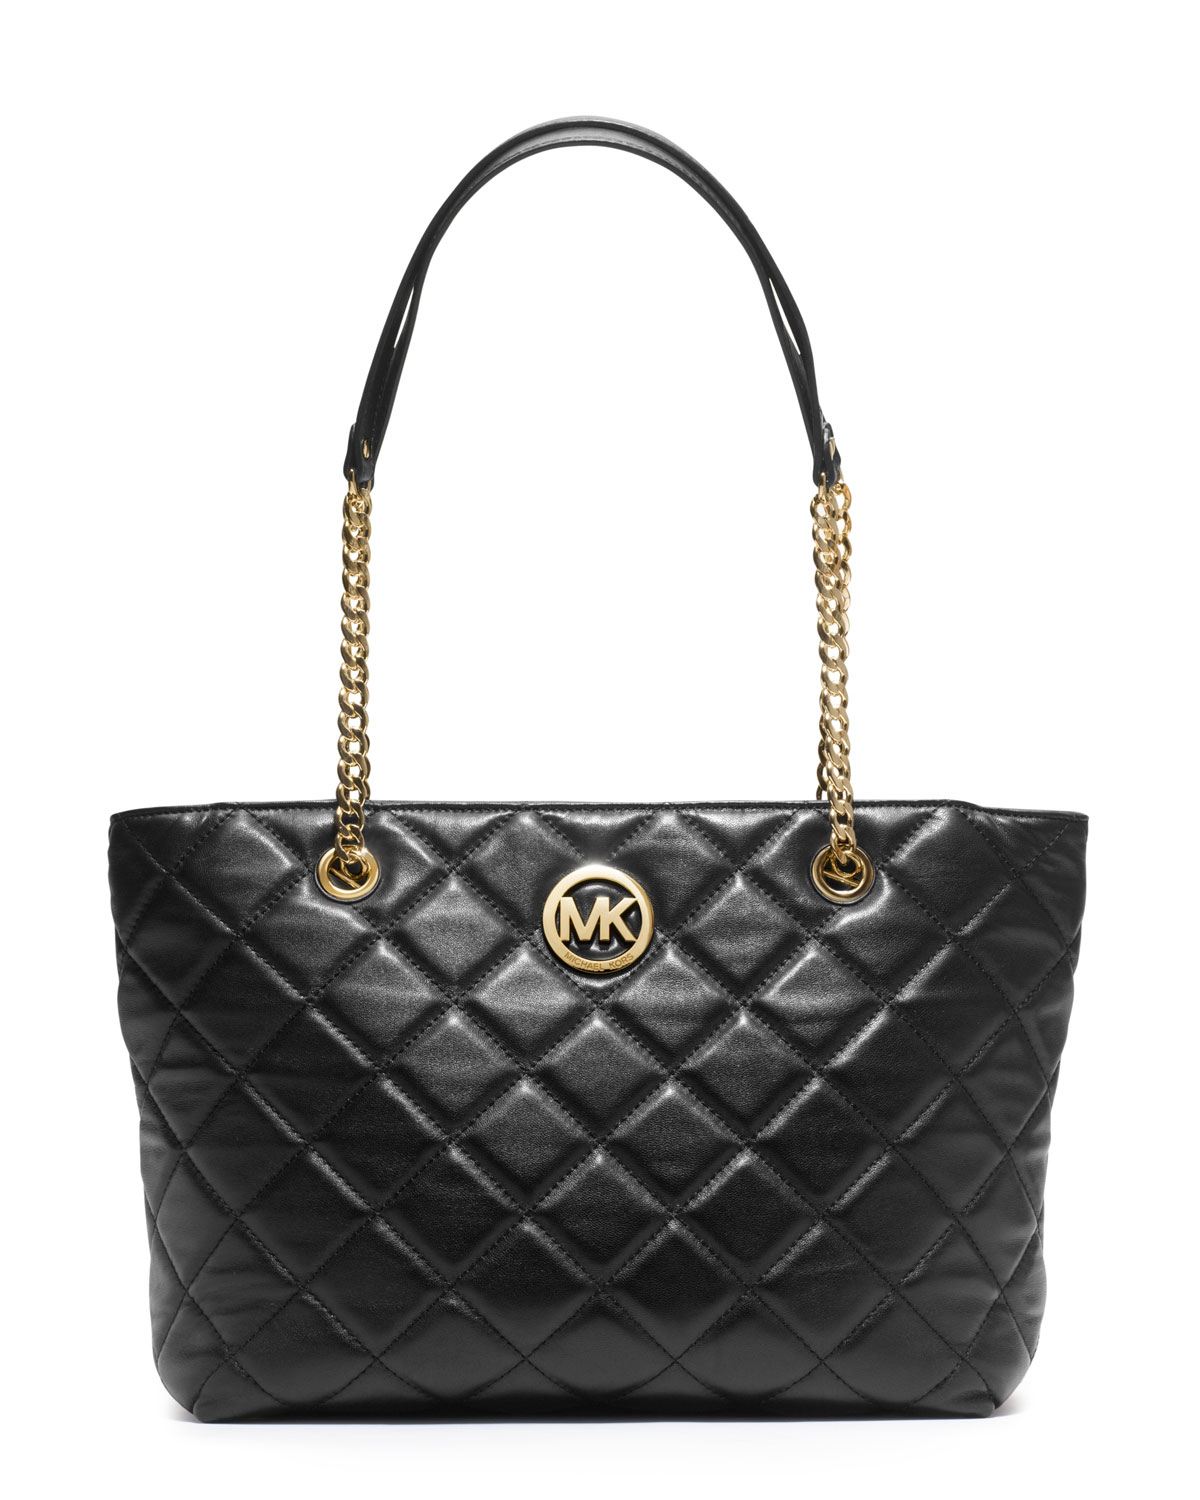 3556b8624b89 Quilted Handbags Michael Kors | Stanford Center for Opportunity ...